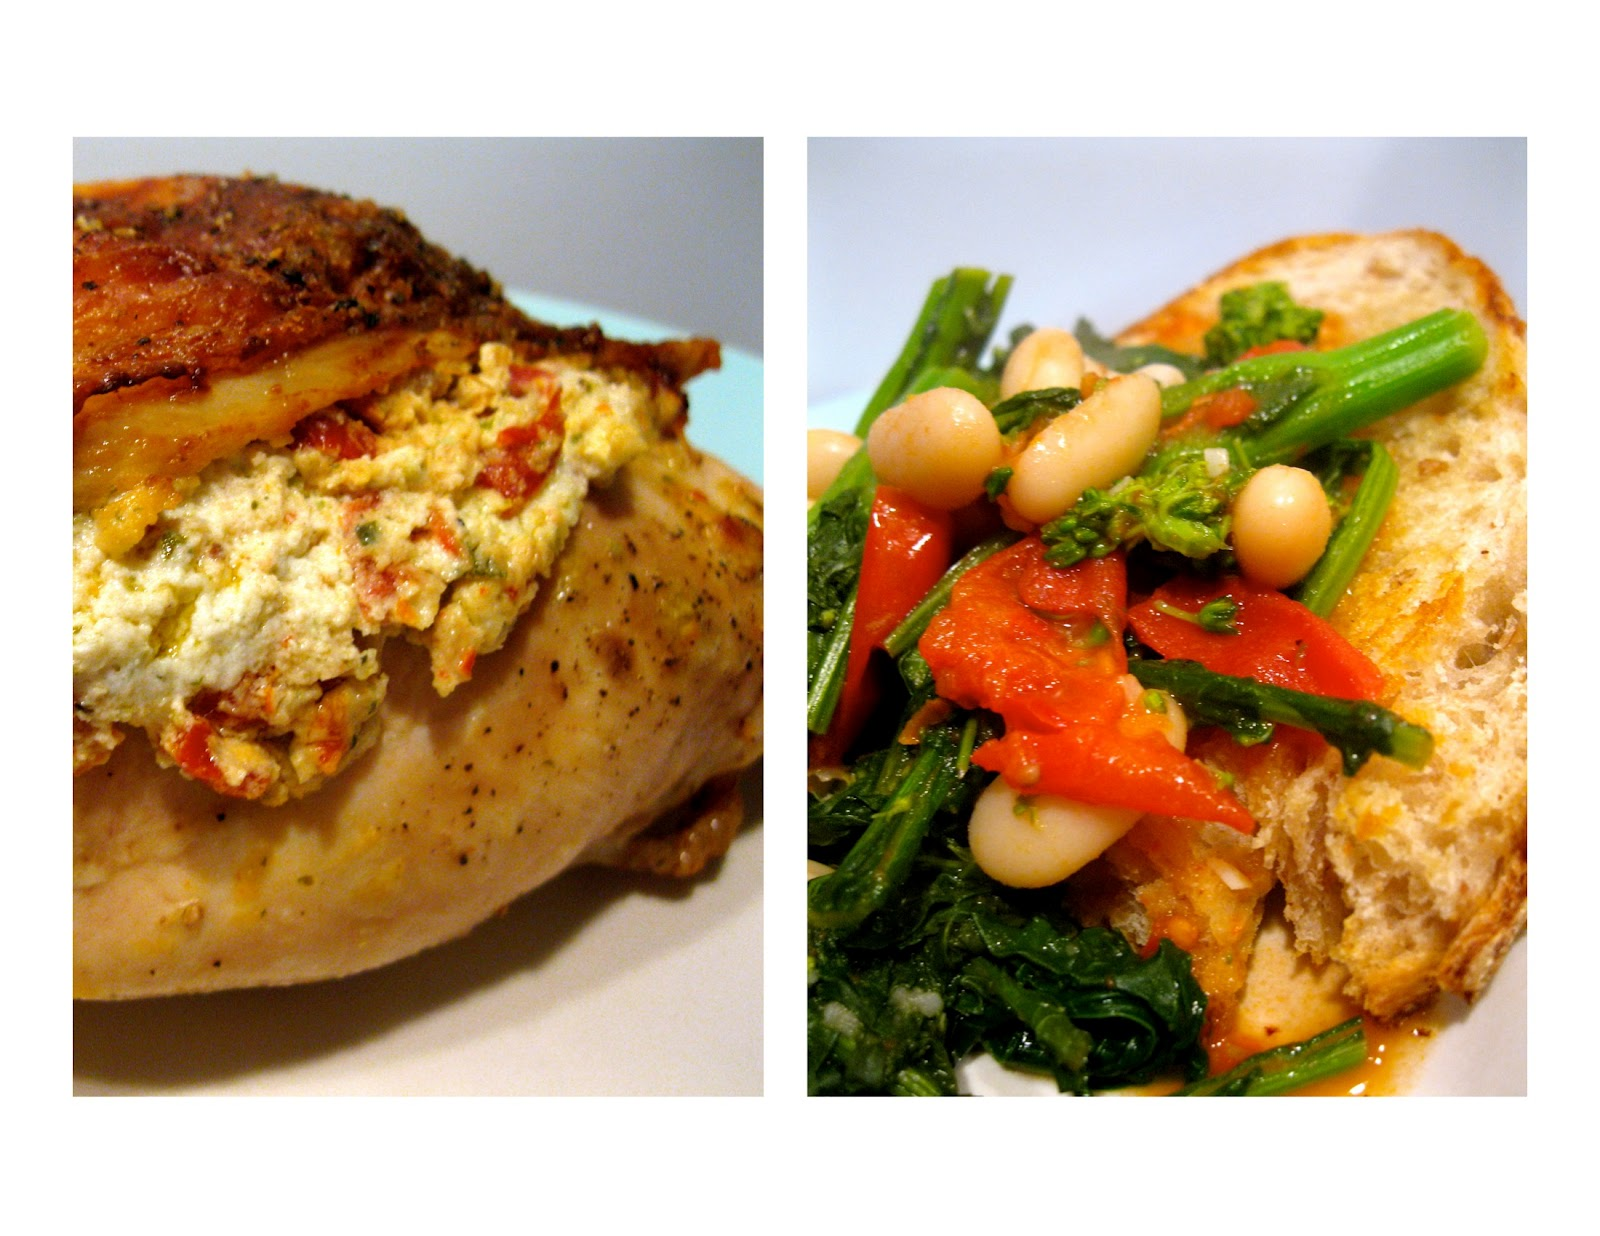 Sun-dried Tomato, Goat Cheese and Basil Stuffed Chicken Breasts